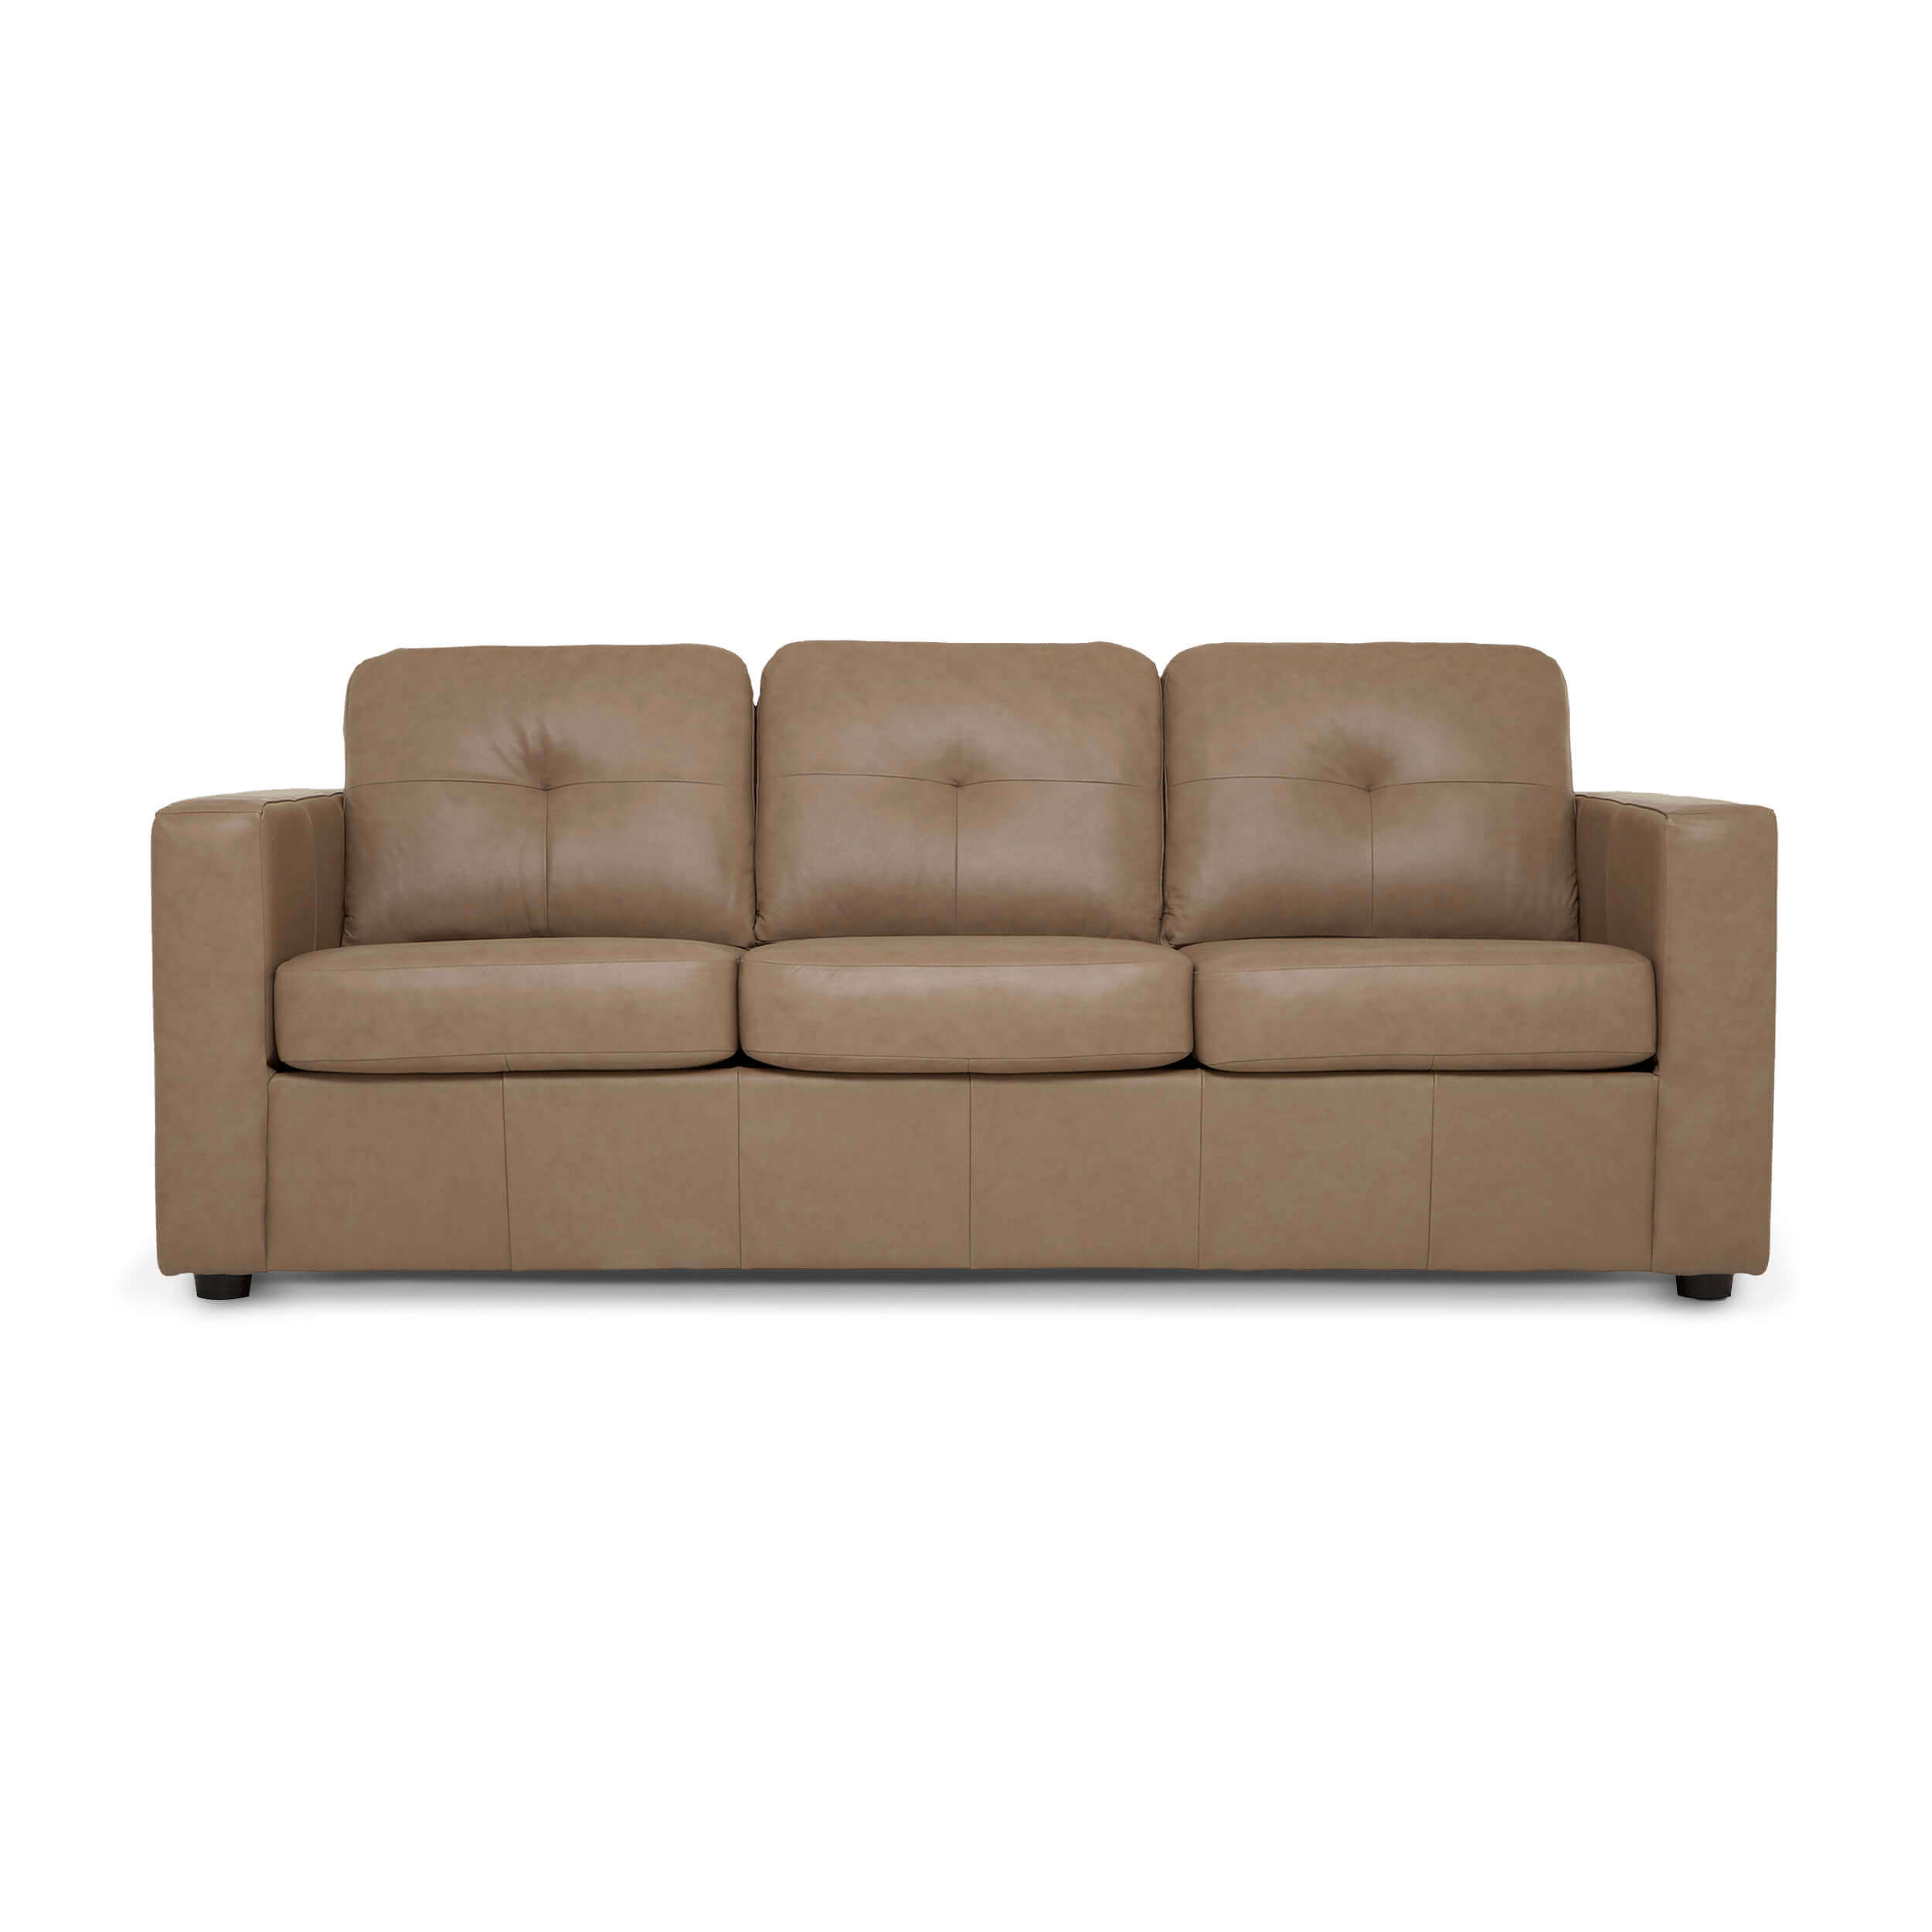 Solo Sofa Sleeper - Leather